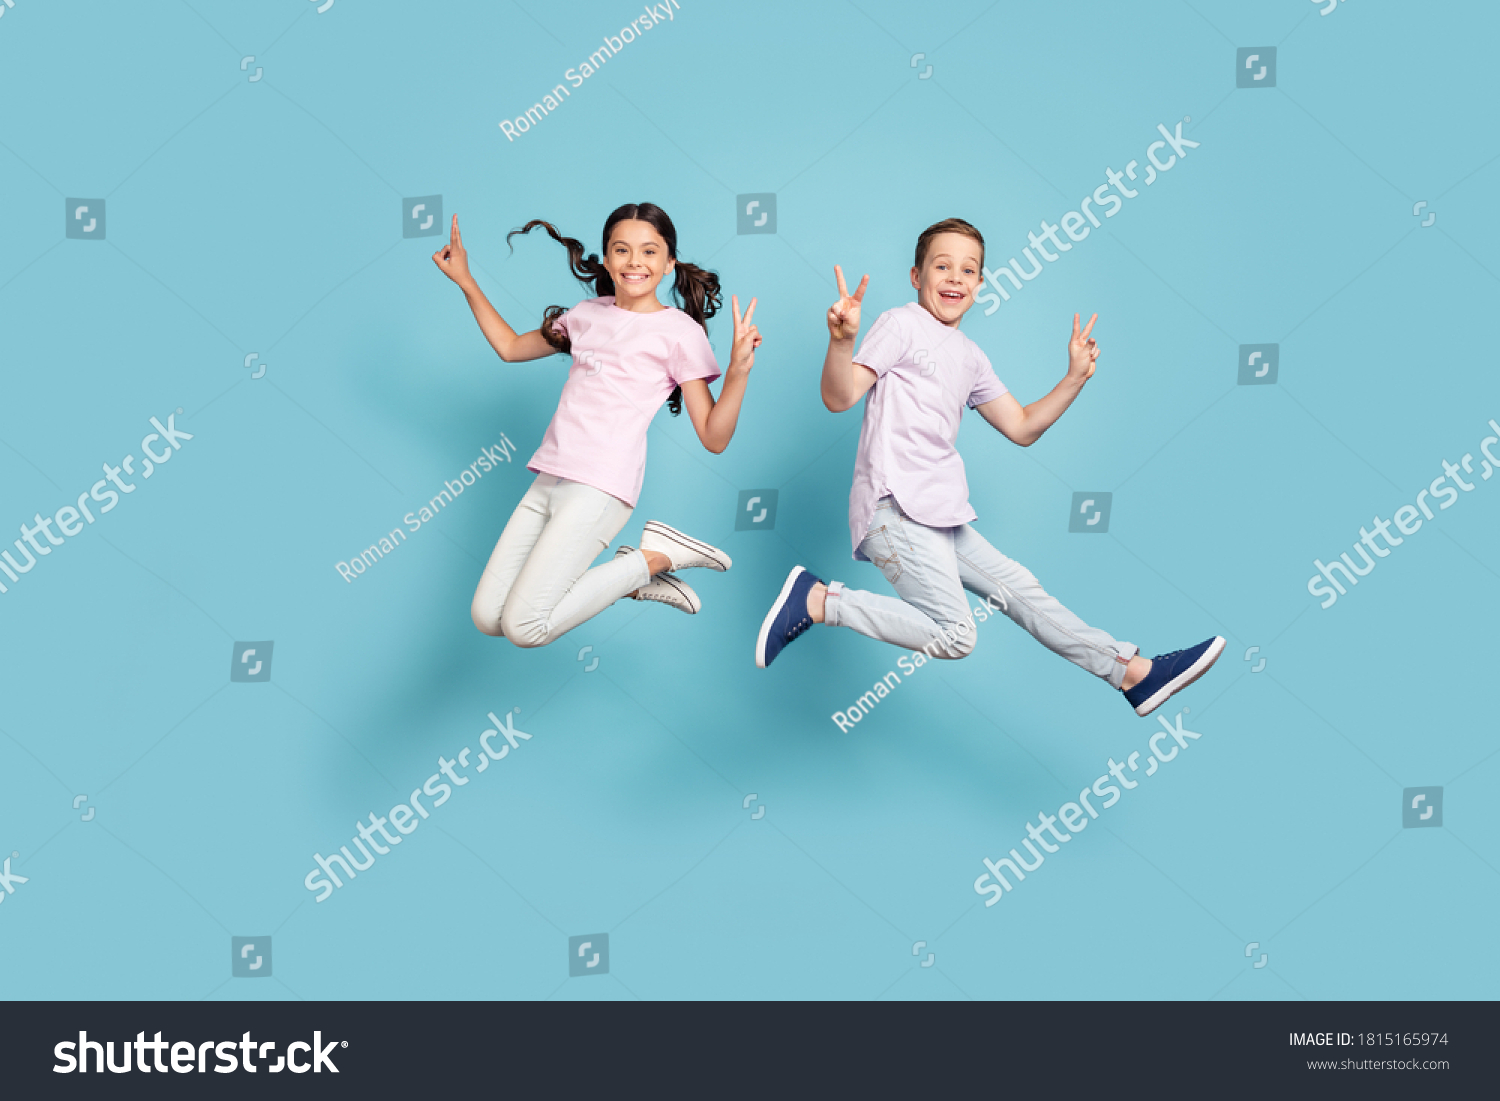 Full length body size view of her she his he nice attractive small little cheerful cheery friends friendship kids jumping showing v-sign having fun isolated over blue pastel color background #1815165974